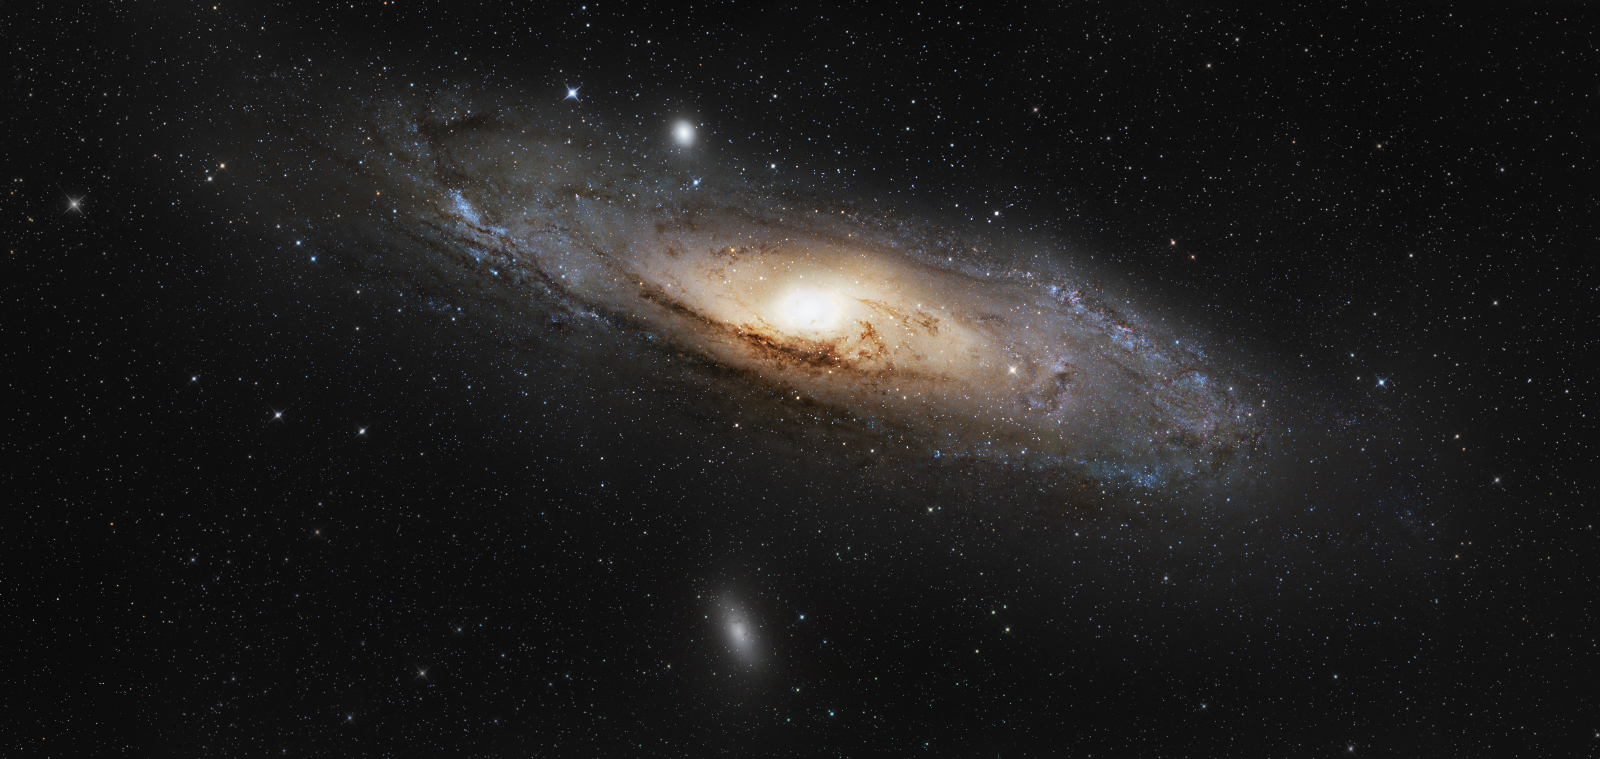 Mosaic of galaxy M31 in Andromeda